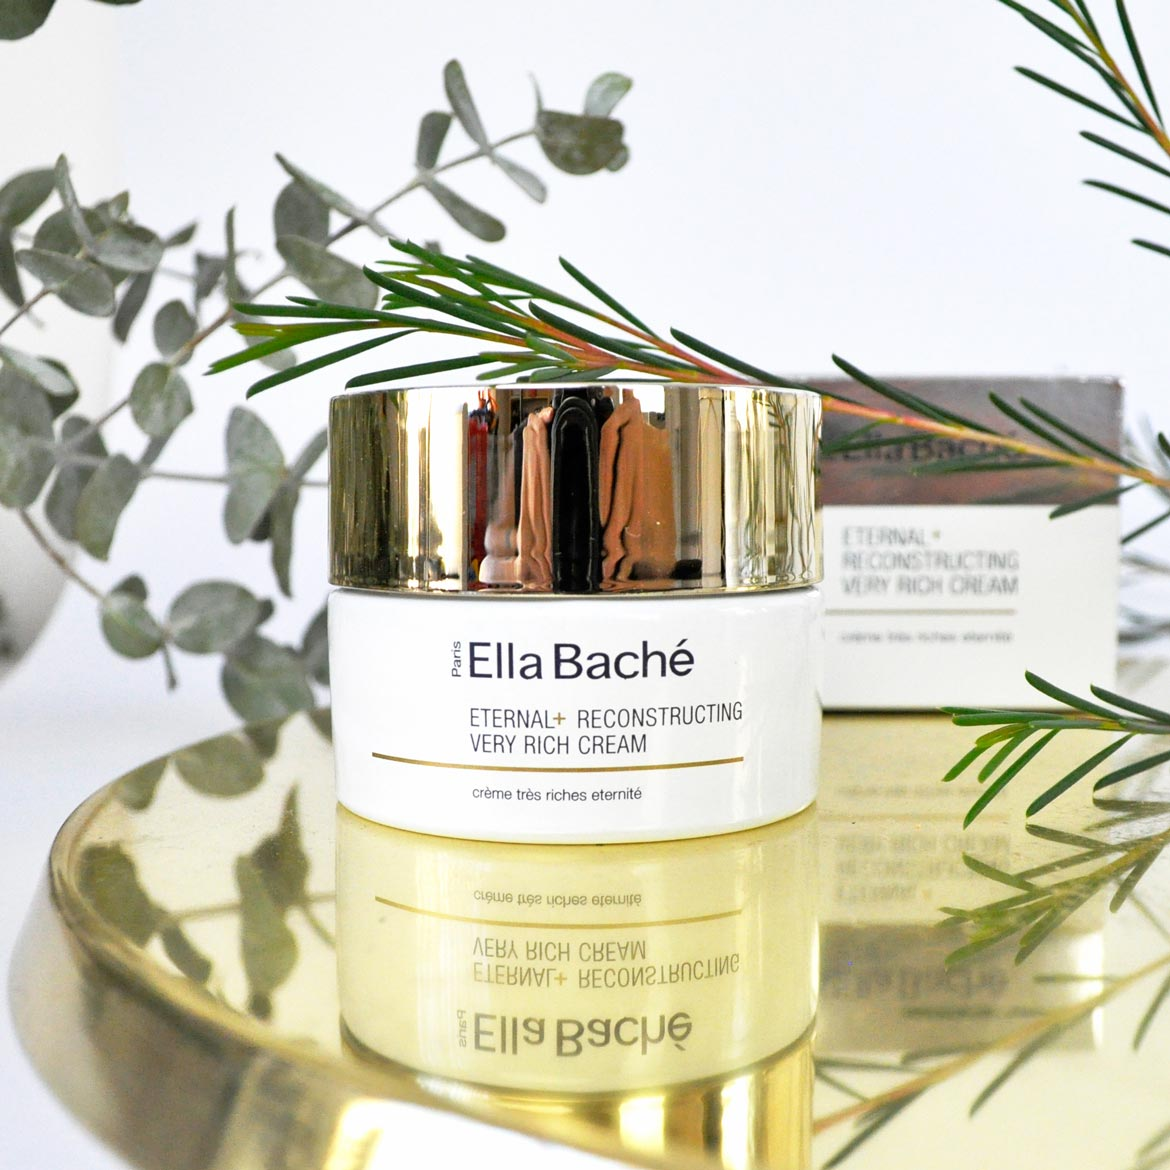 Ella Baché Eternal + Reconstructing Very Rich Cream